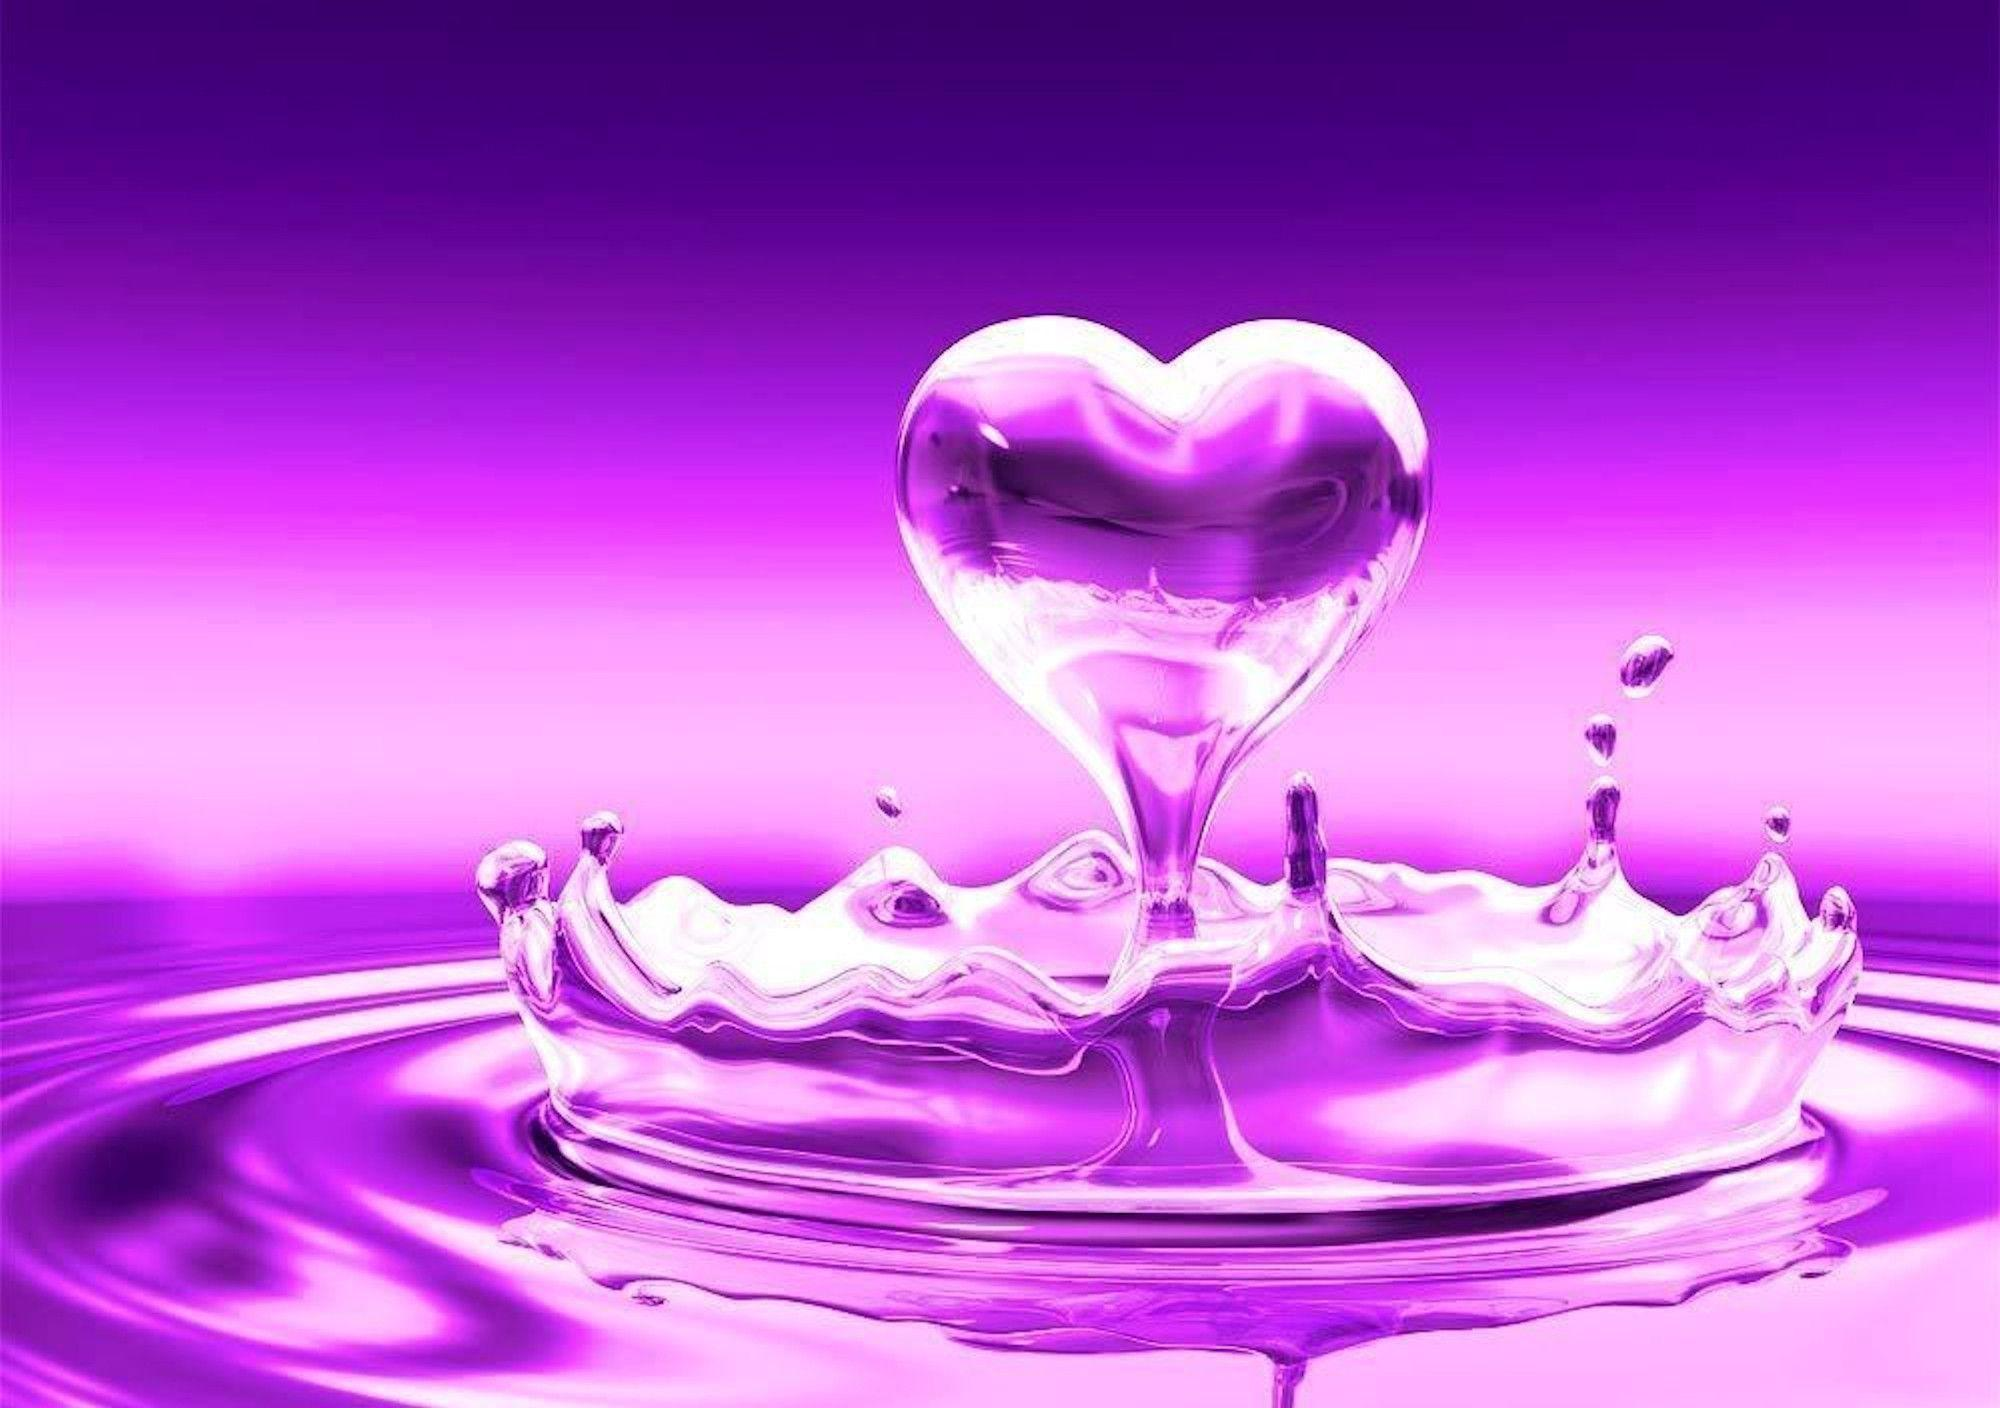 Love Heart Wallpaper Background : Purple Heart Wallpapers - Wallpaper cave